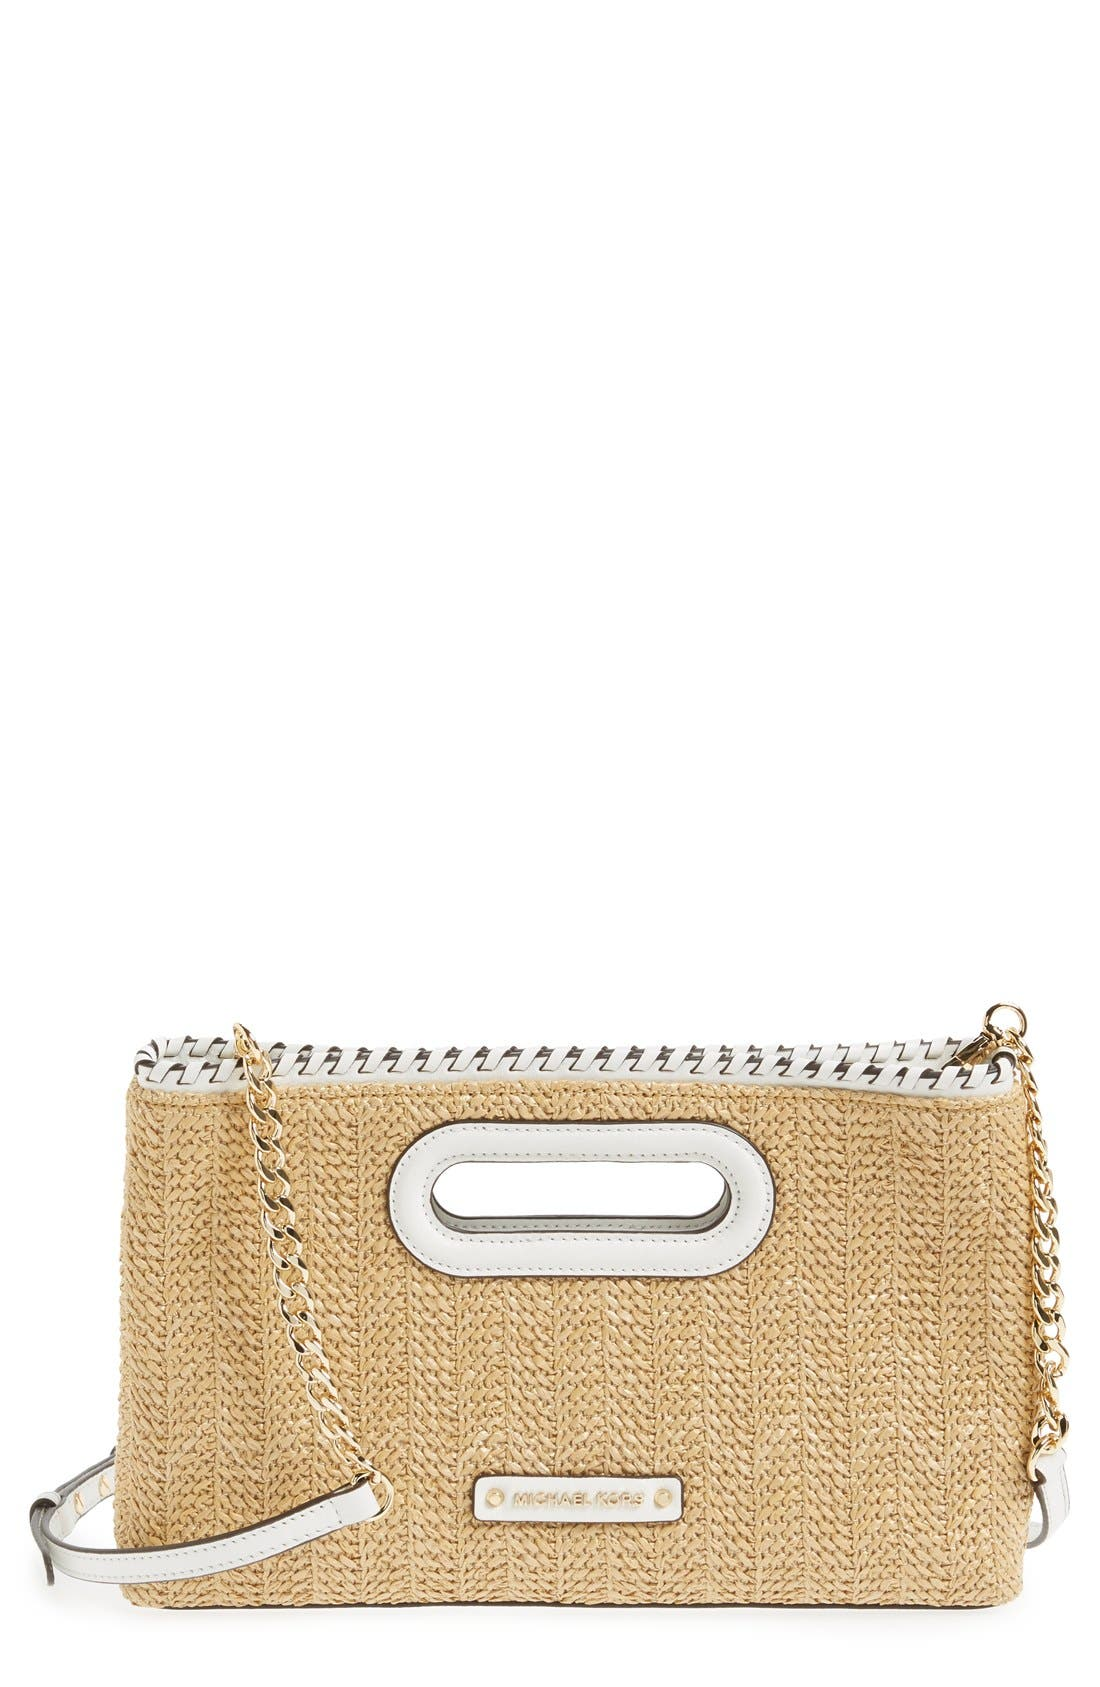 'Large Rosalie' Straw Clutch, Main, color, 100